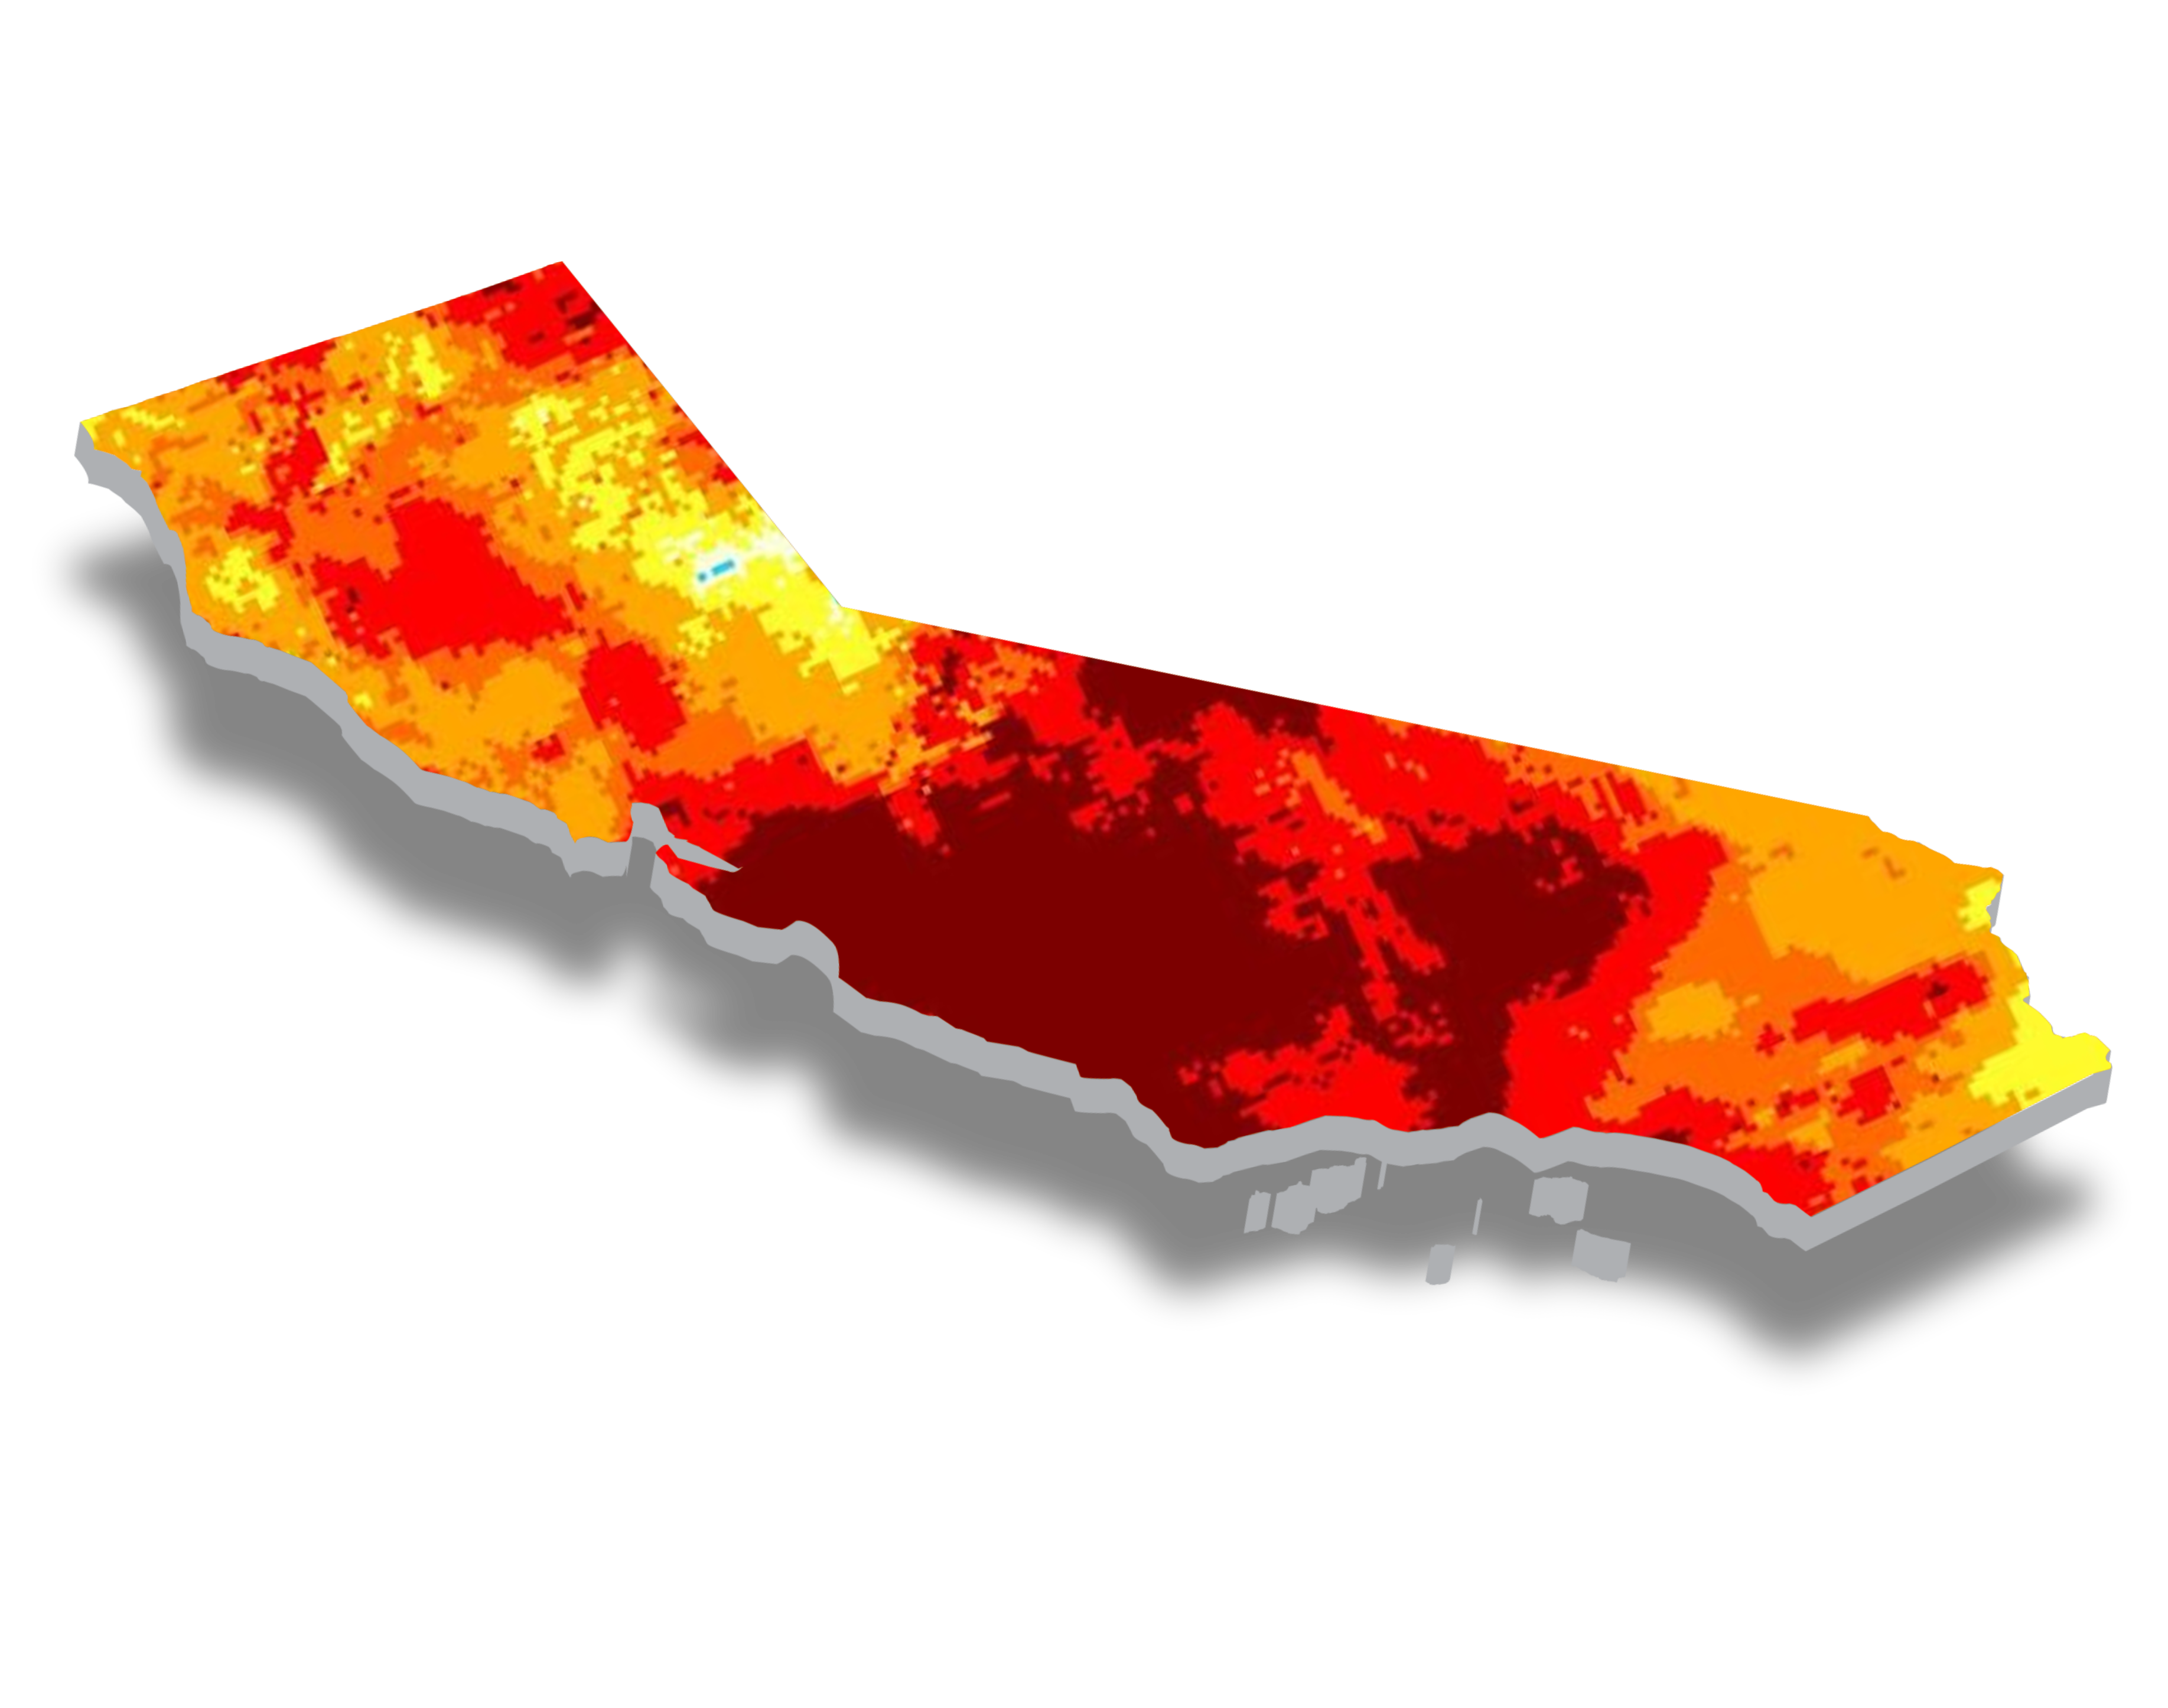 California Map - Impacted by heat